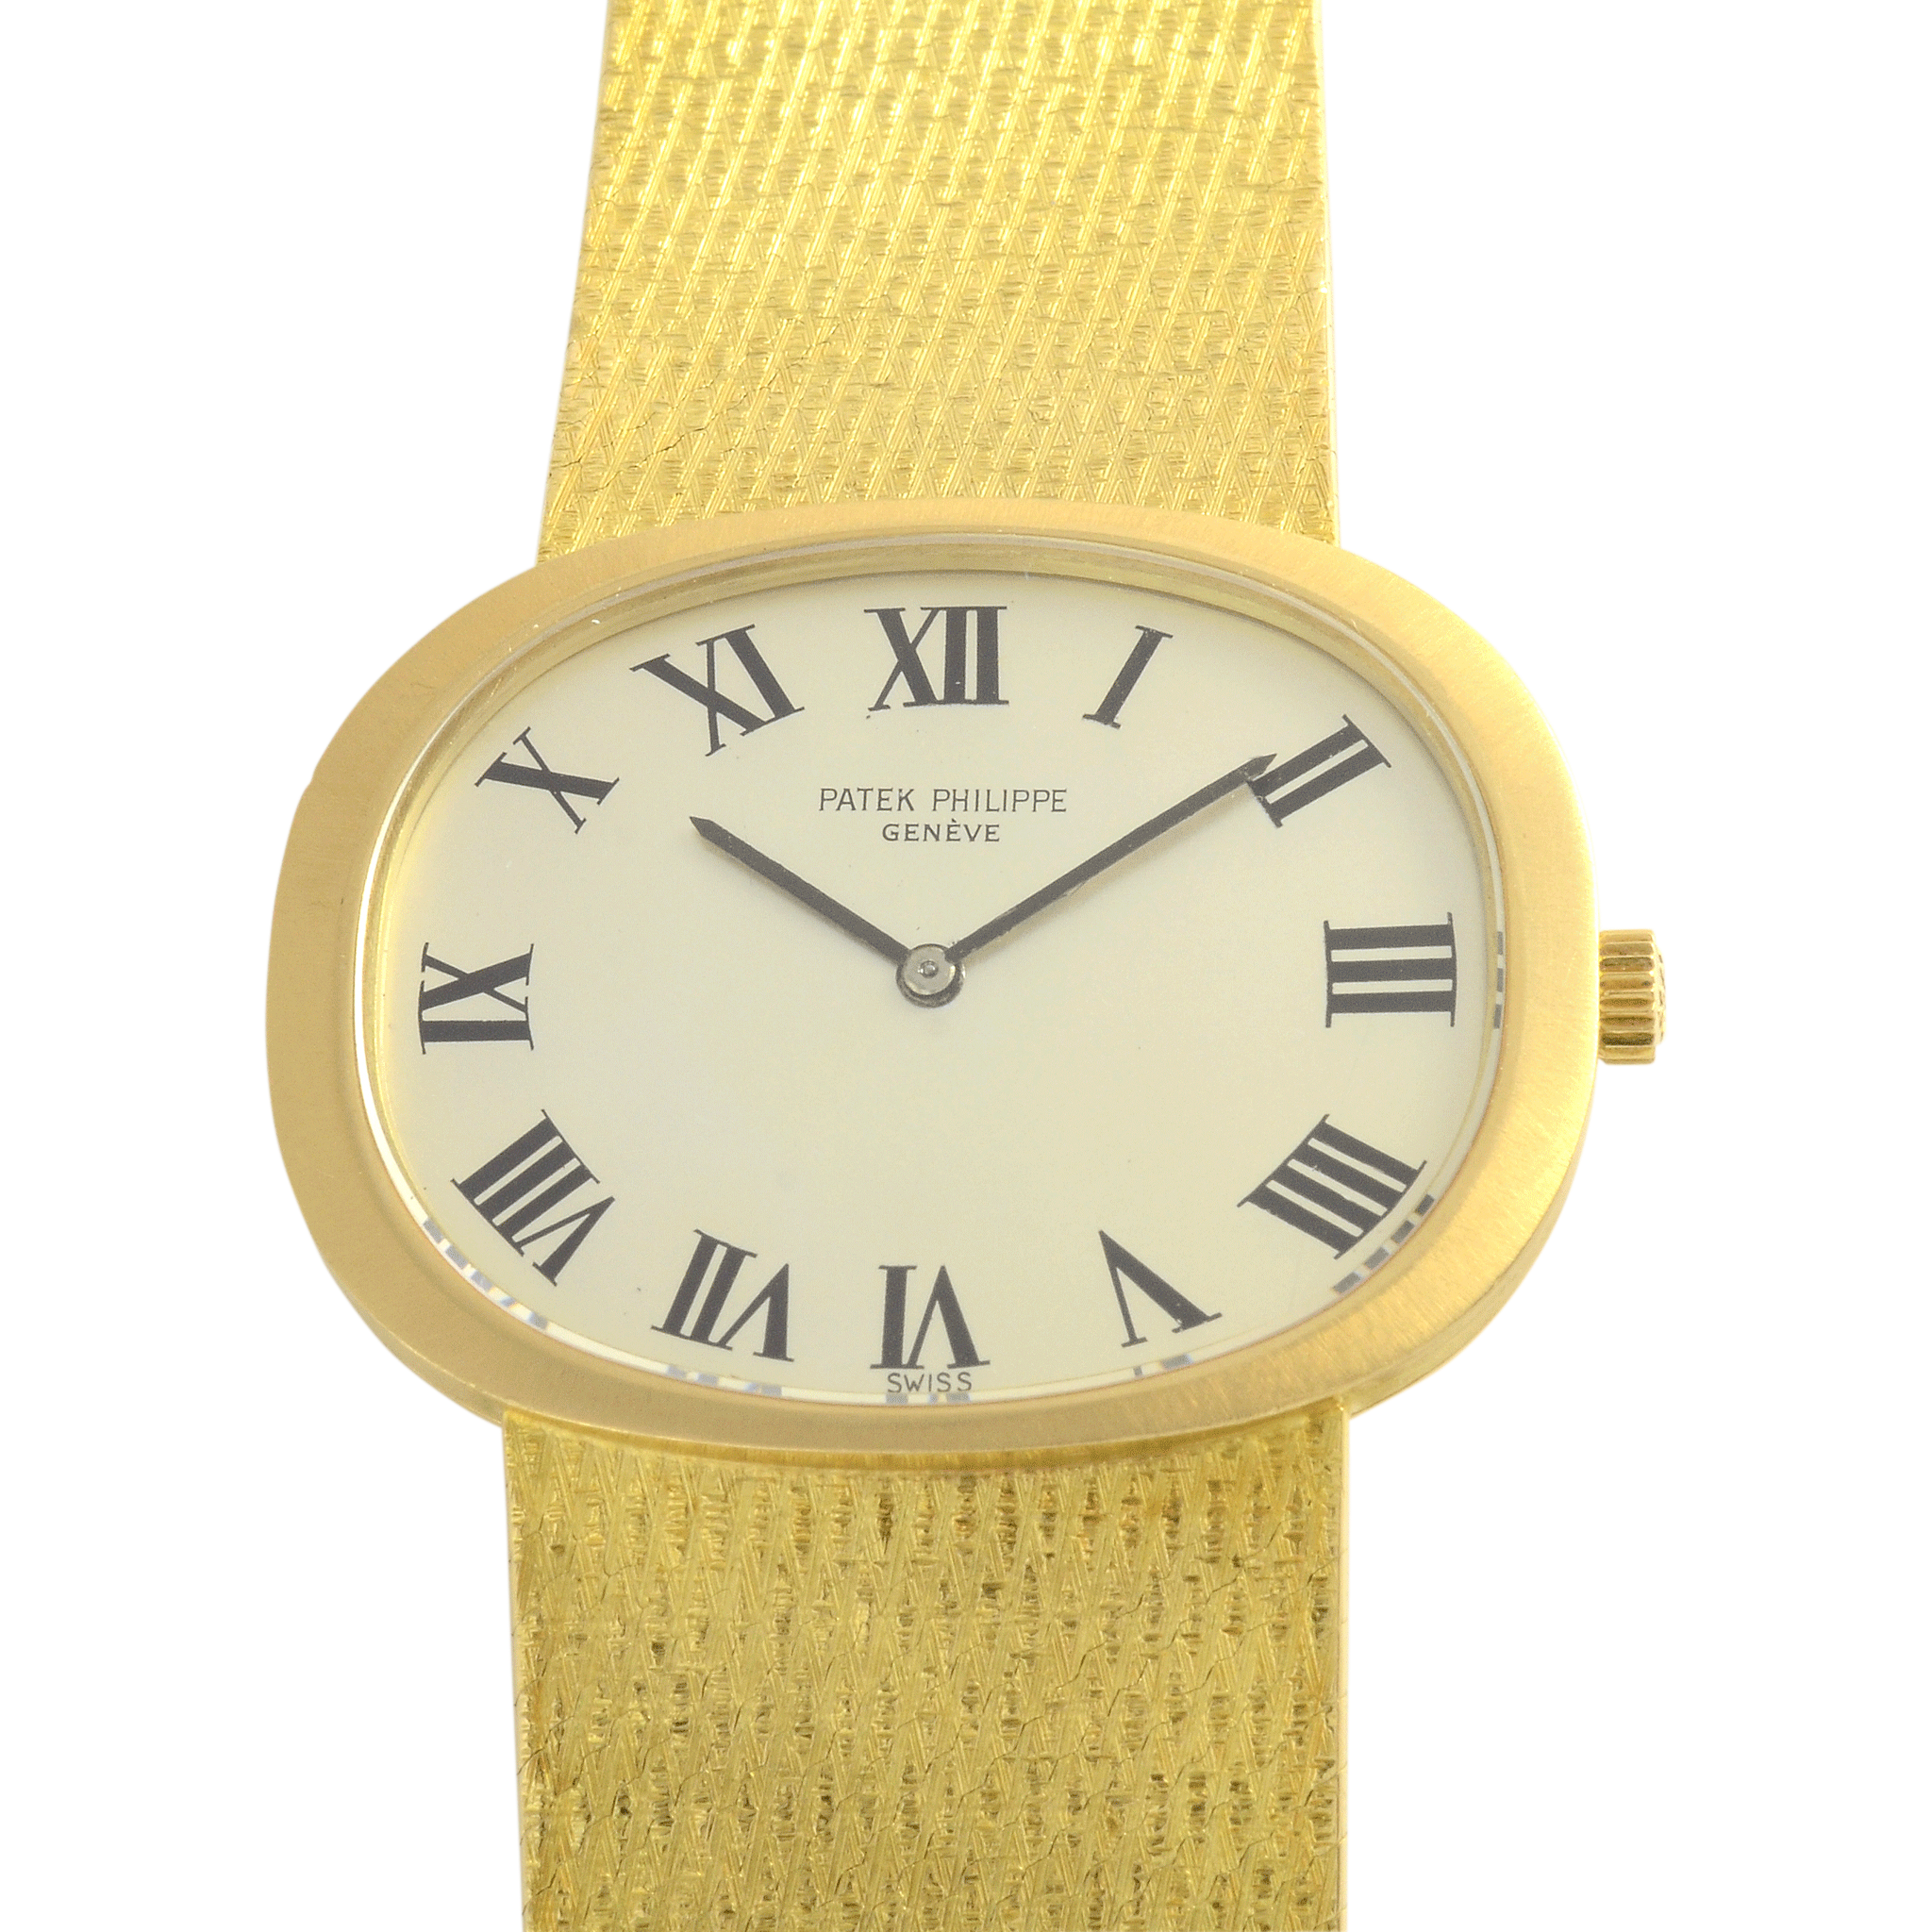 Swiss Mens Yellow Gold Wrist Watch by Patek Philippe